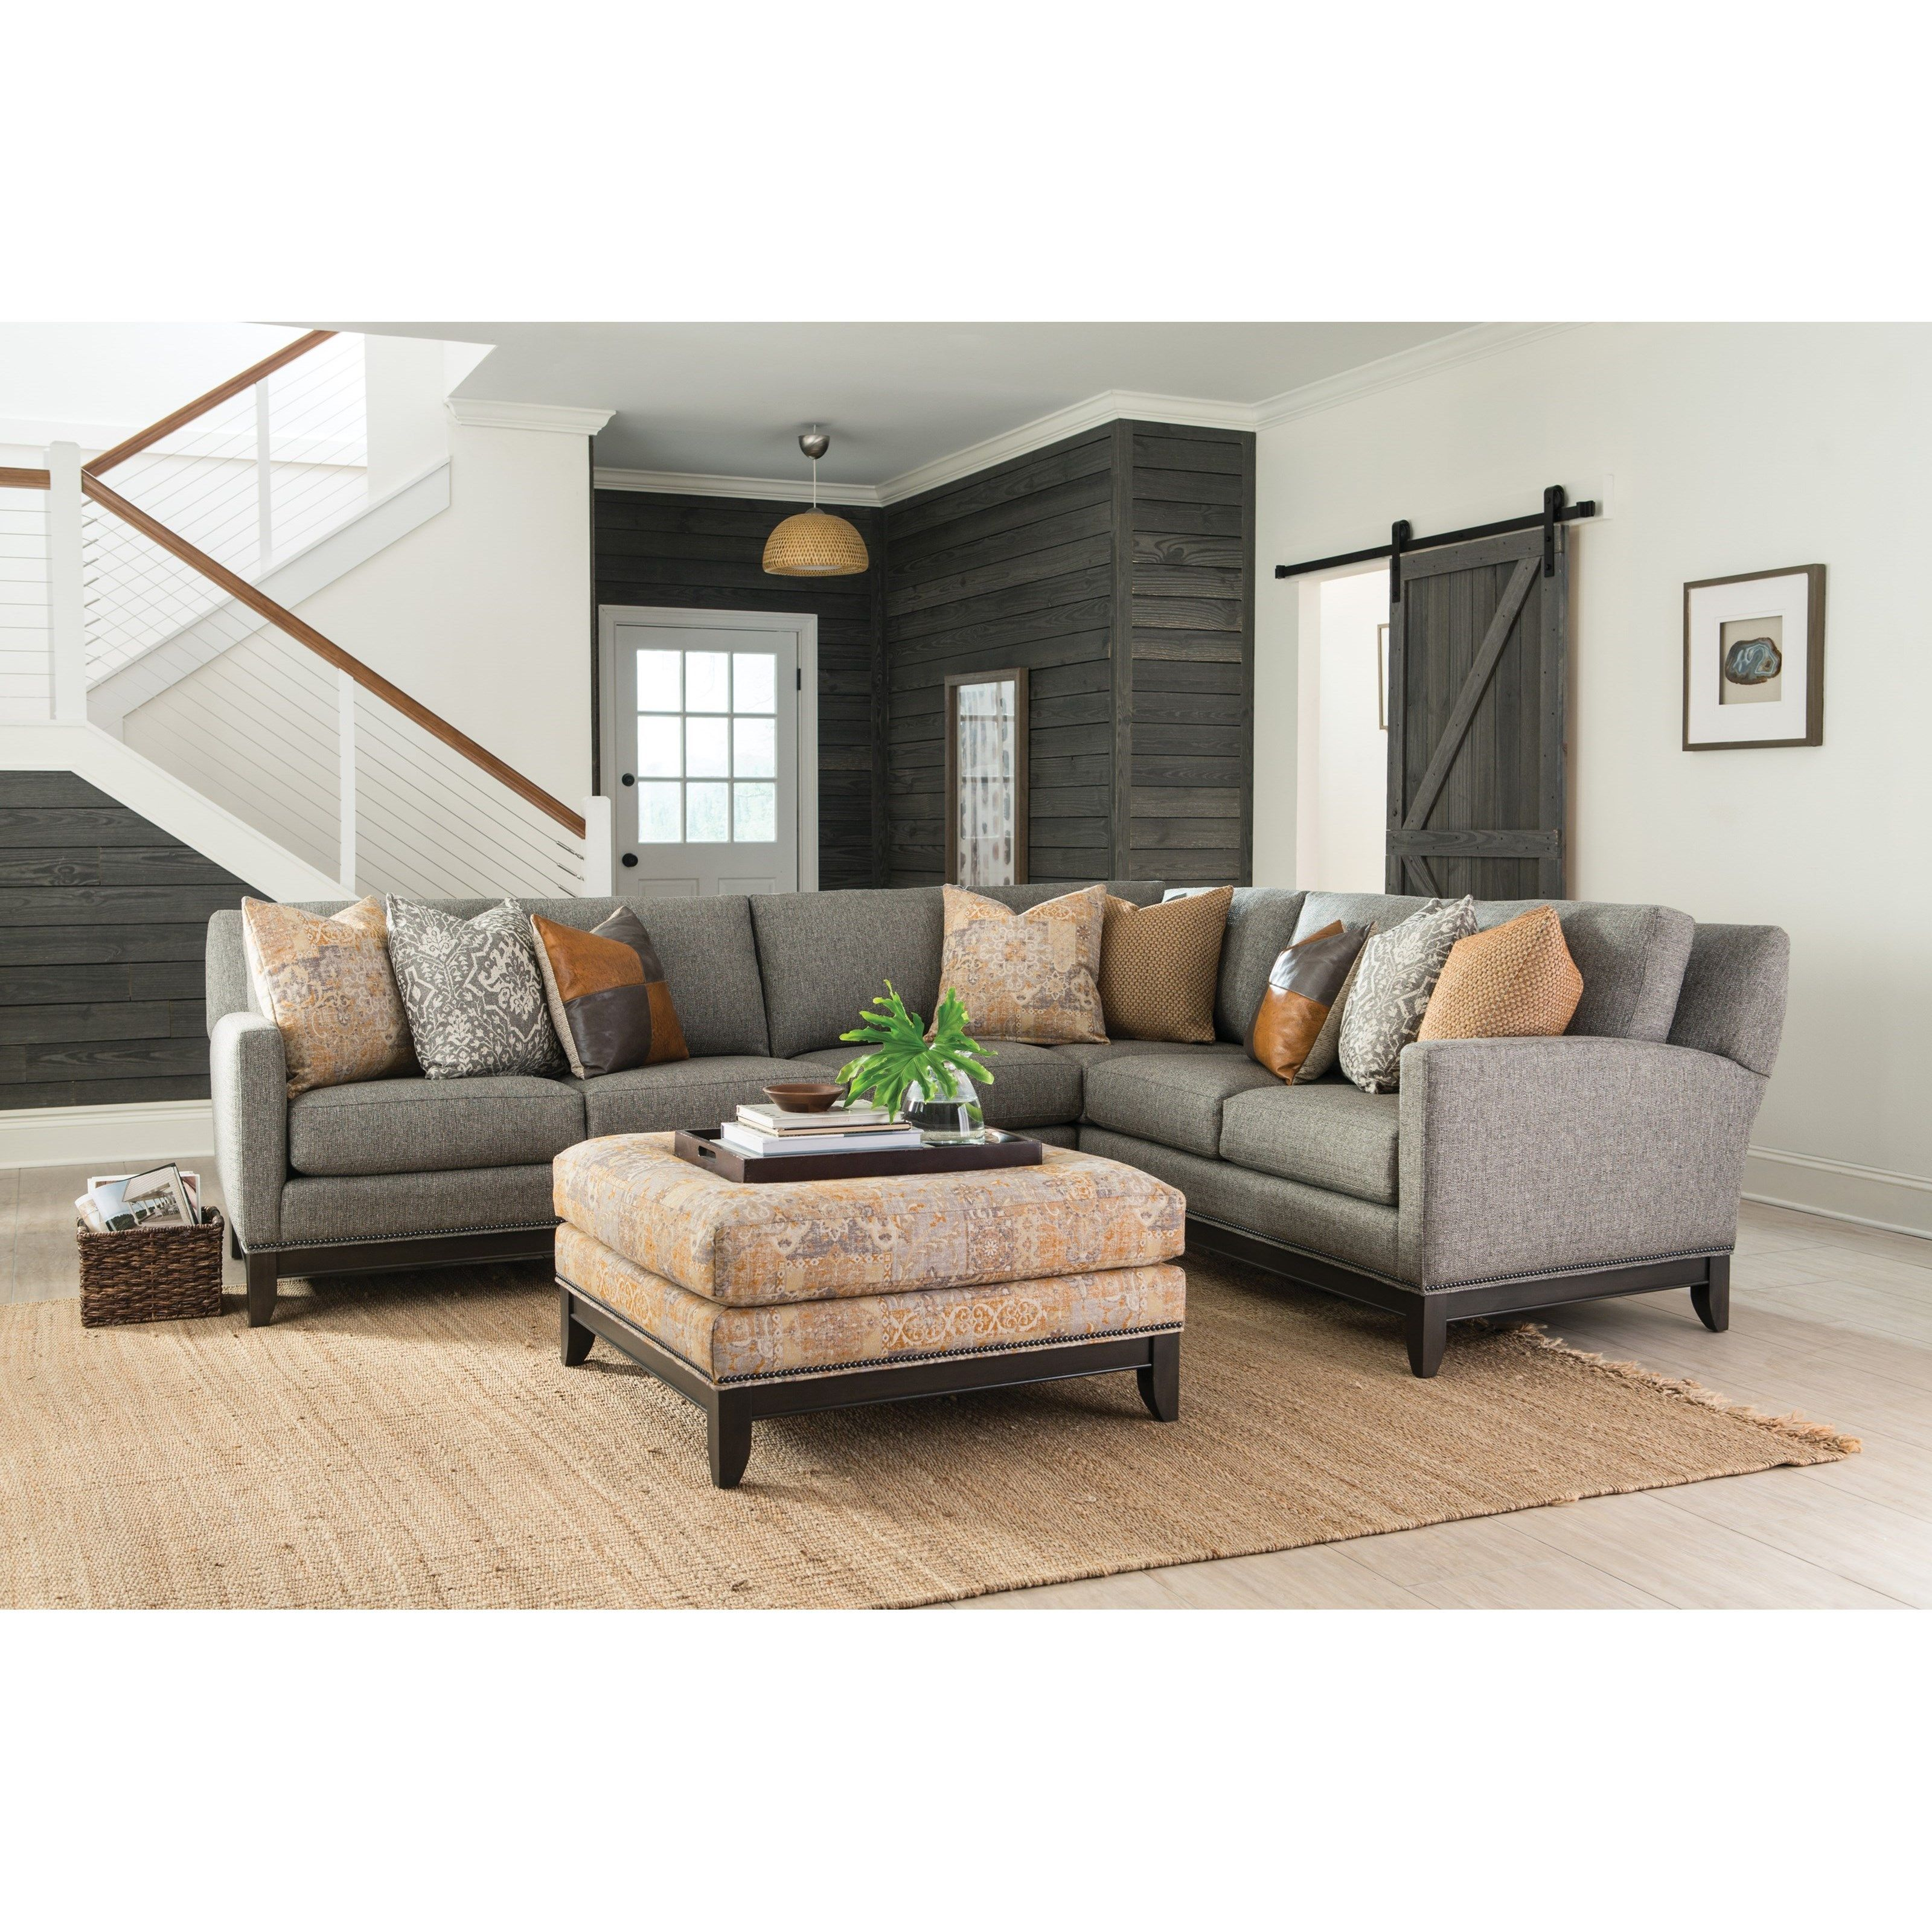 238 Sectional Sofa By Smith Brothers At Story